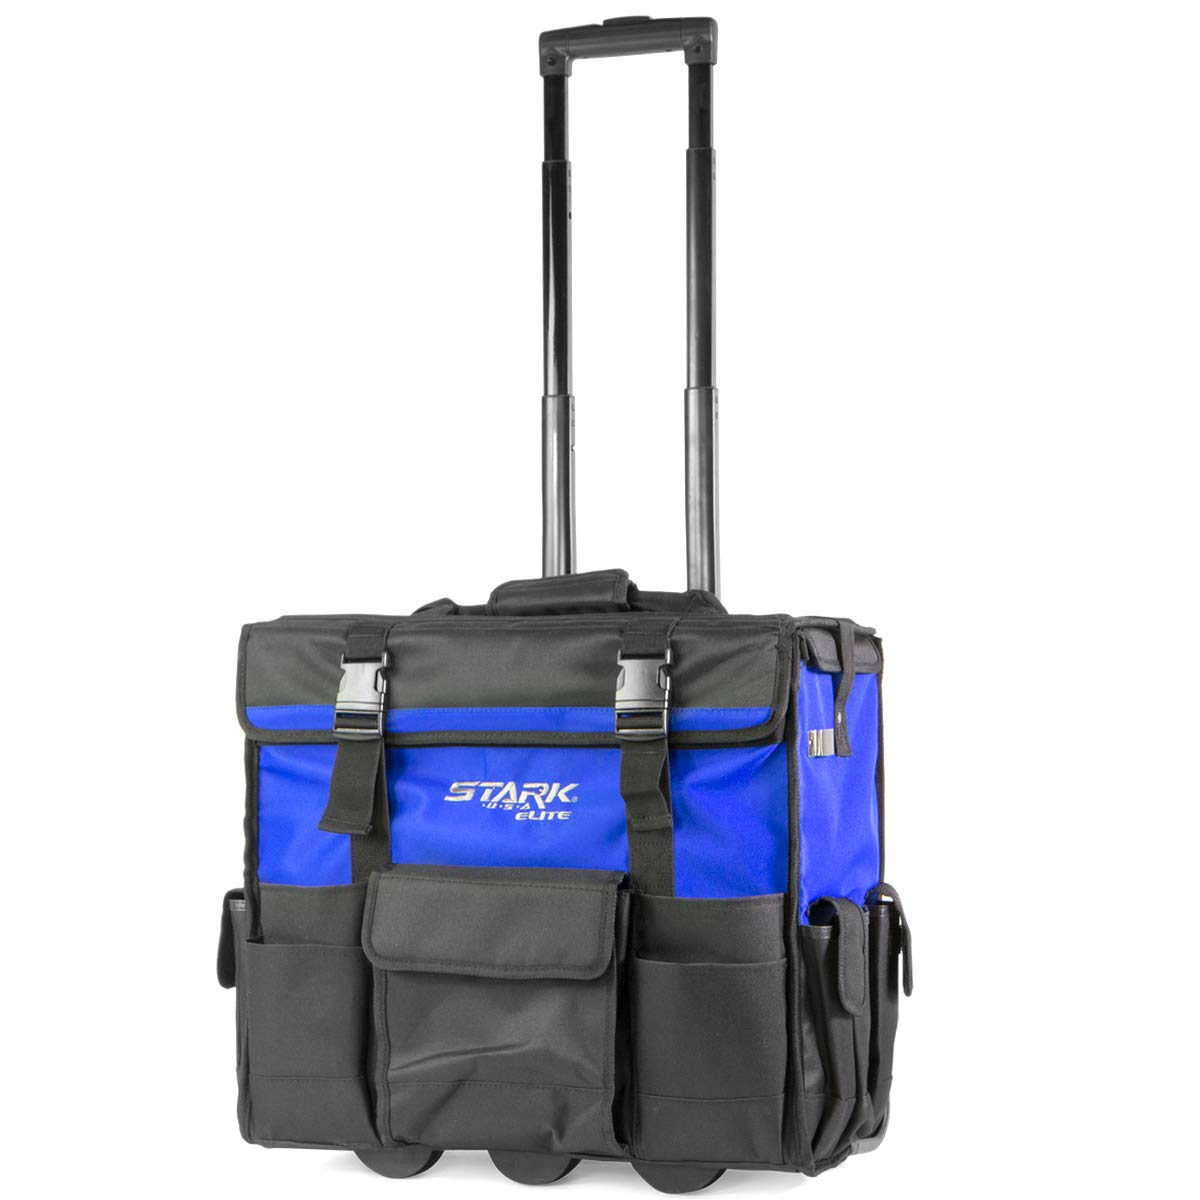 Stark 20'' Rolling Wide Mouth Tool Bag Tote Telescoping Handle Tool Organizer Heavy Duty with Wheel and Divider, Blue by STARK ELITE